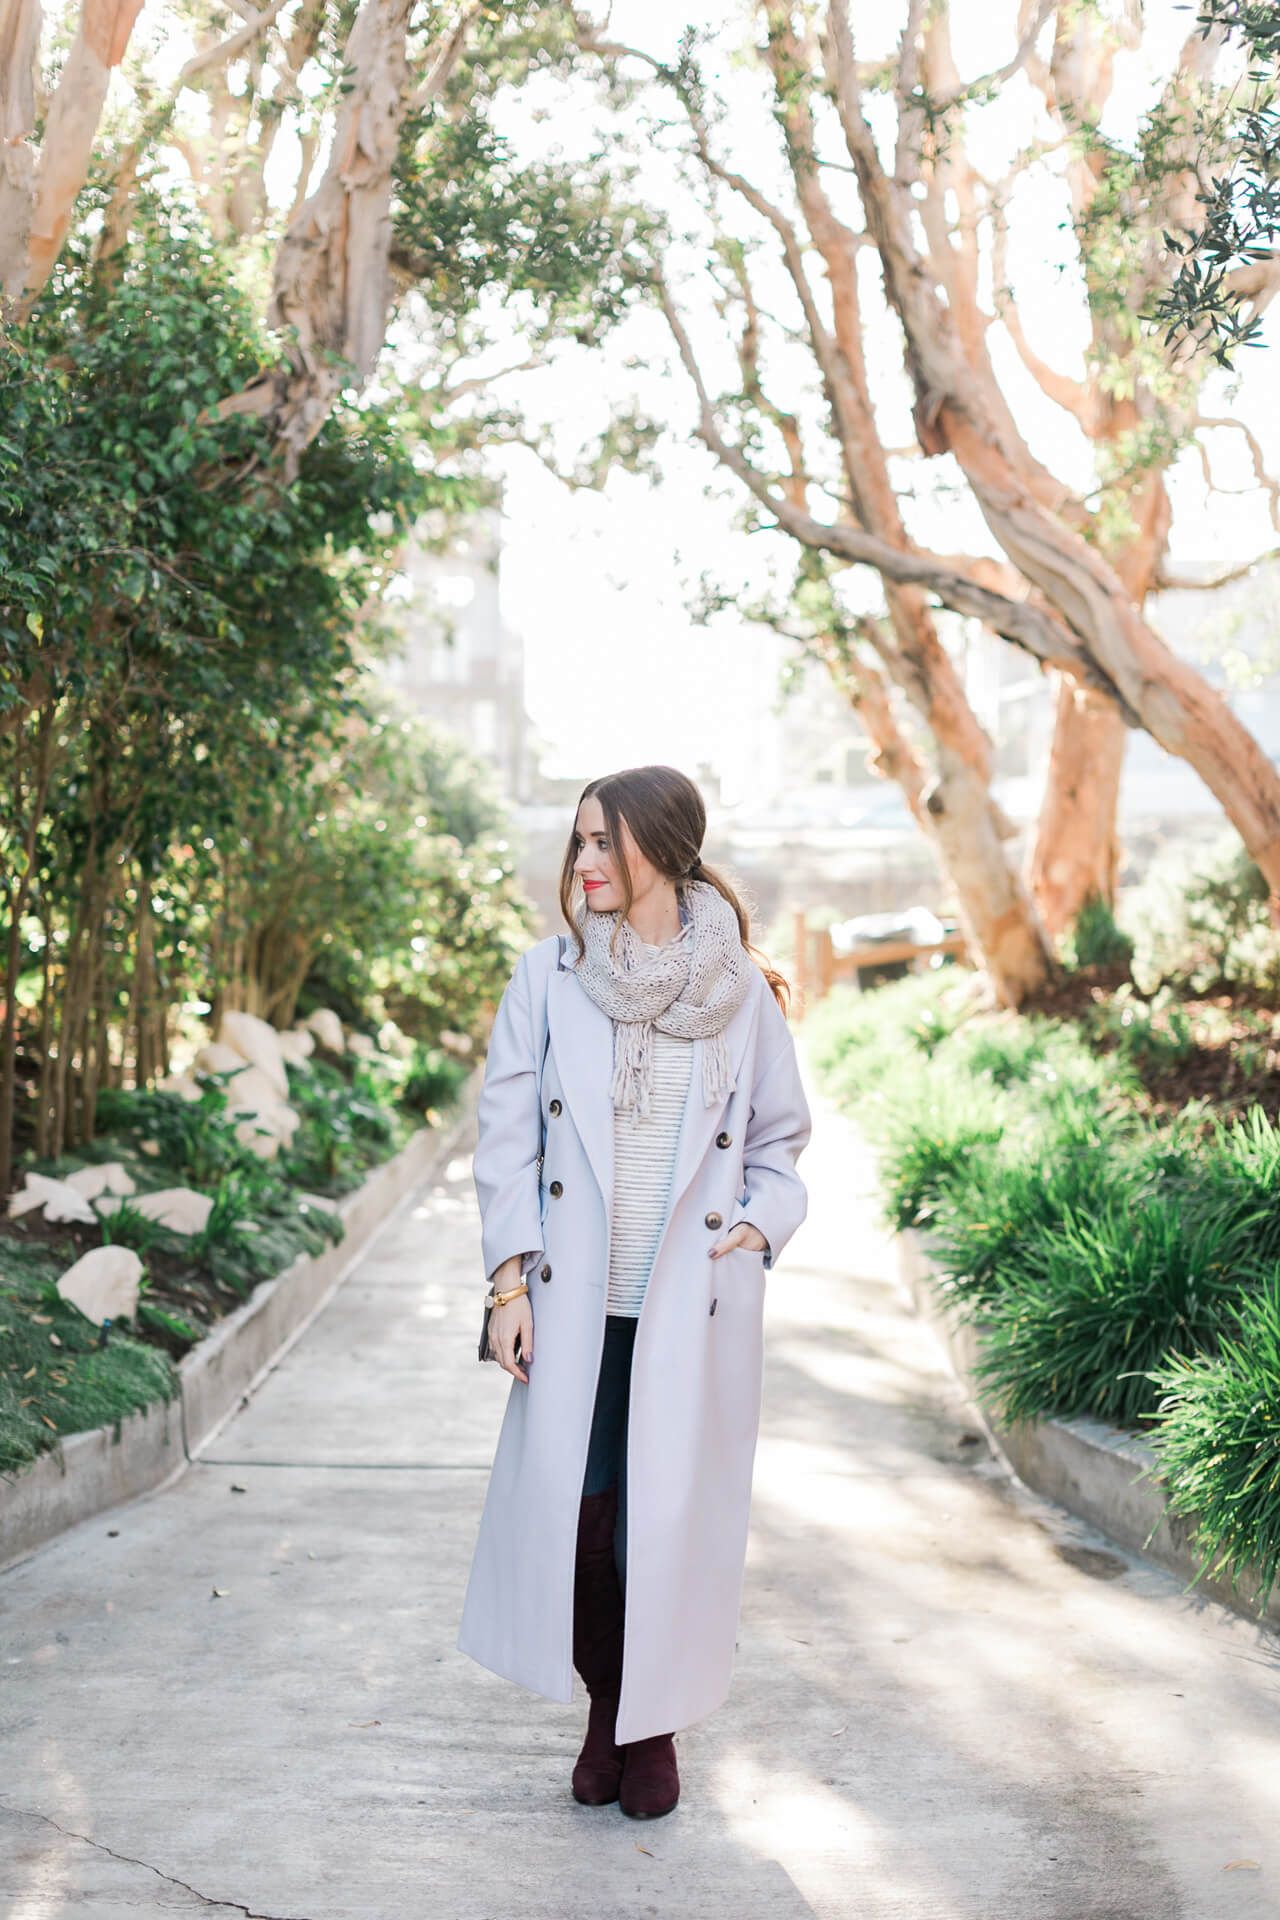 Lavender Coat with striped top and over the knee boot